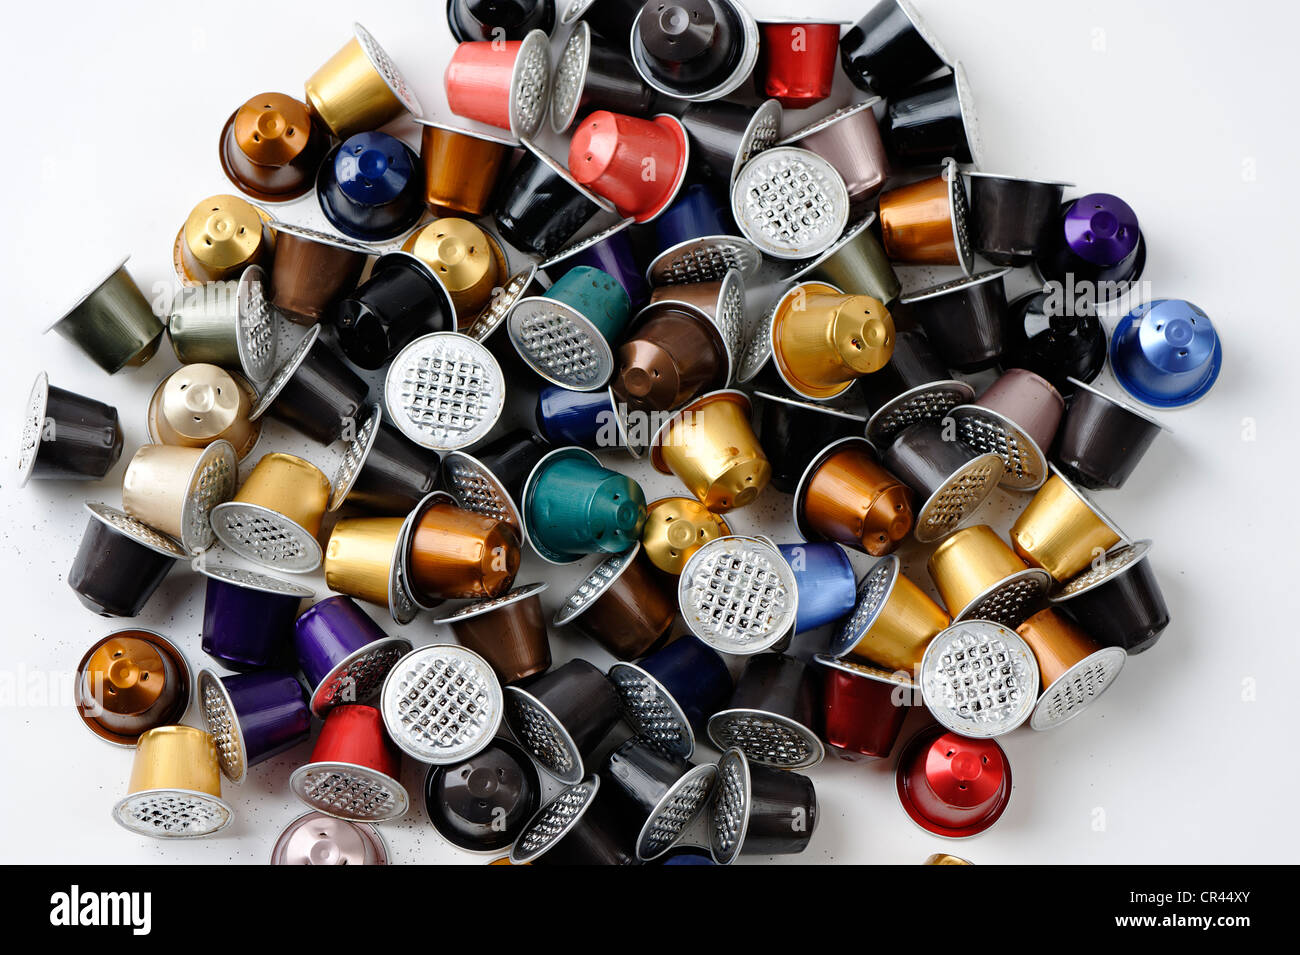 nespresso capsules images galleries with a bite. Black Bedroom Furniture Sets. Home Design Ideas